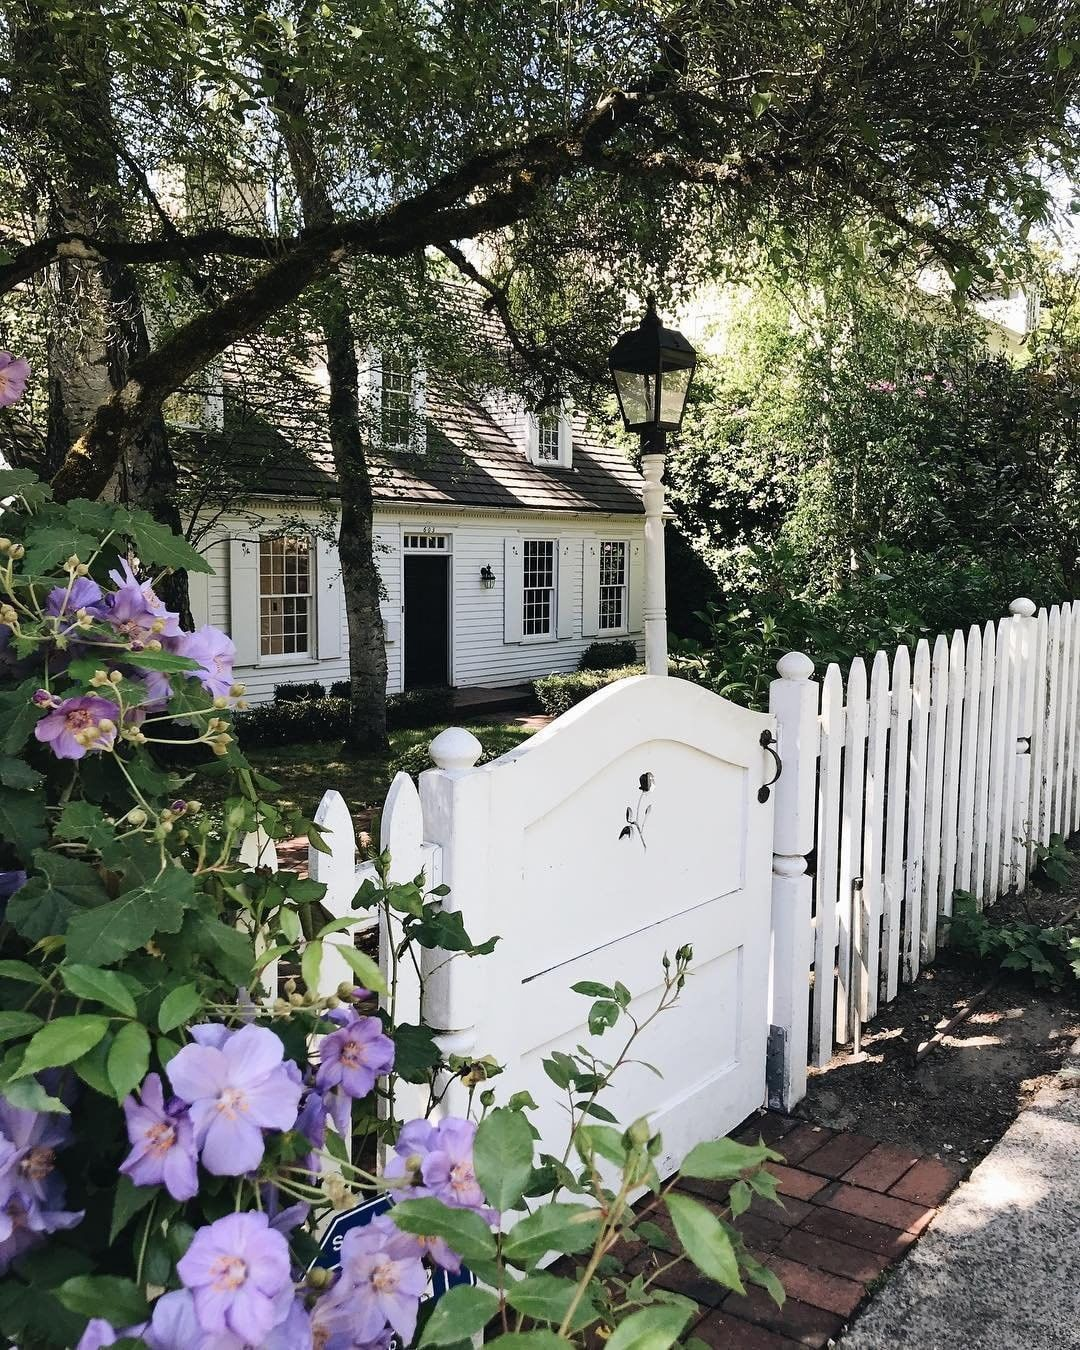 This Is A White, Picket Fence Dream-come-true, With Just A